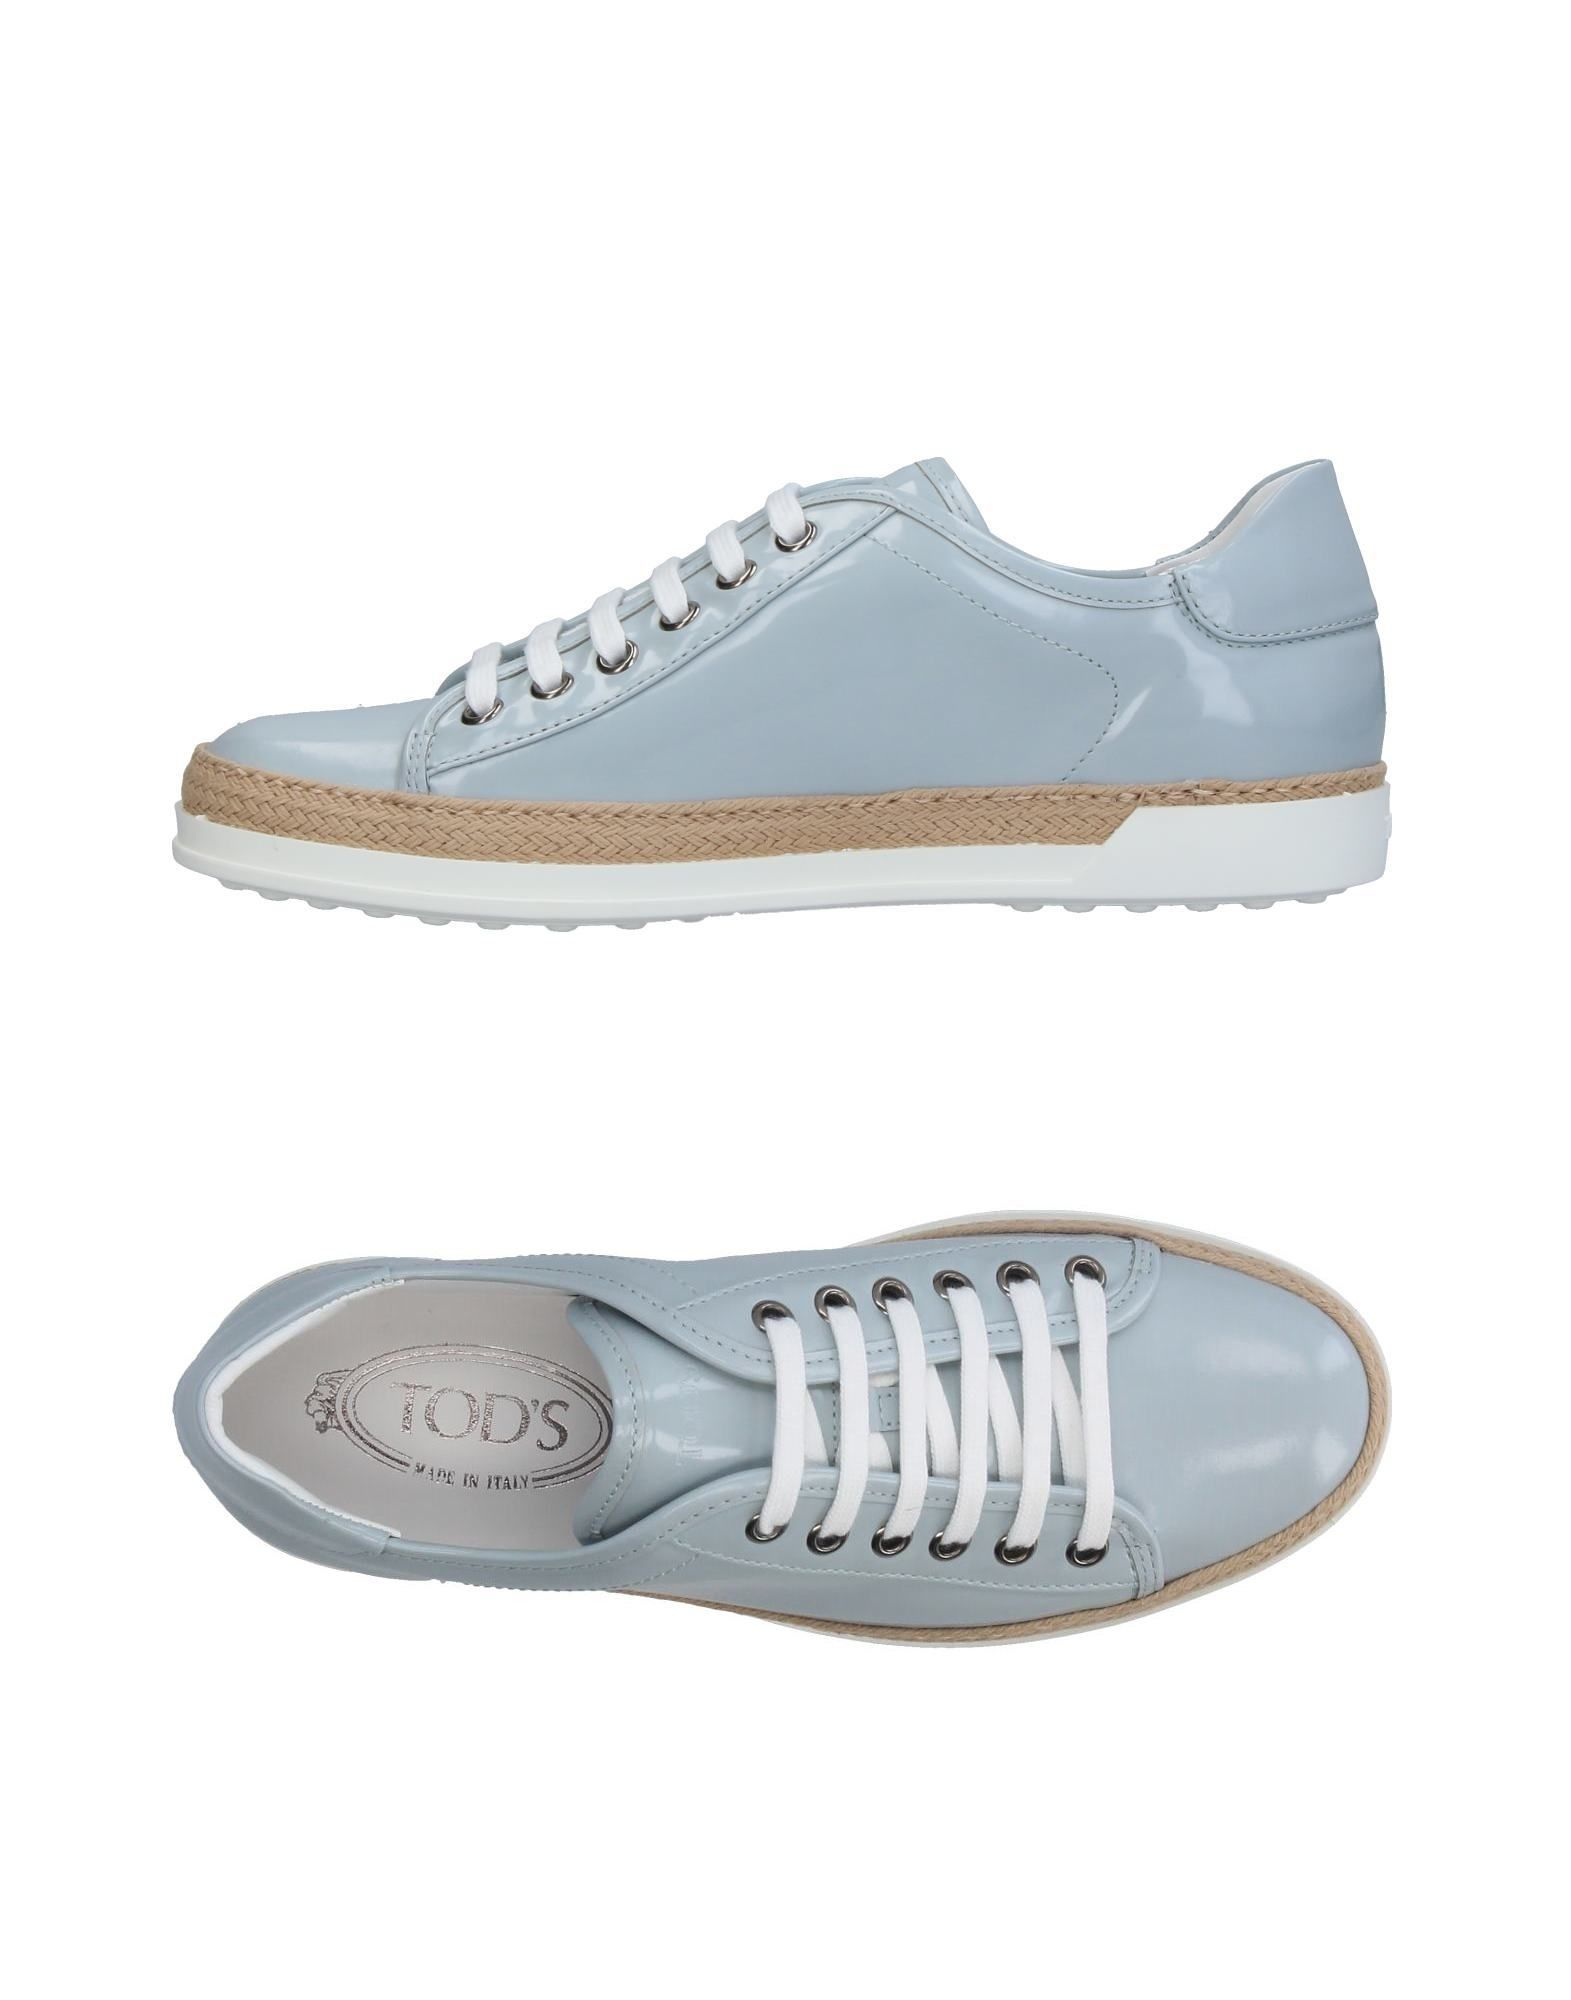 Tod's Sneakers Damen  11412721OEGut aussehende strapazierfähige Schuhe